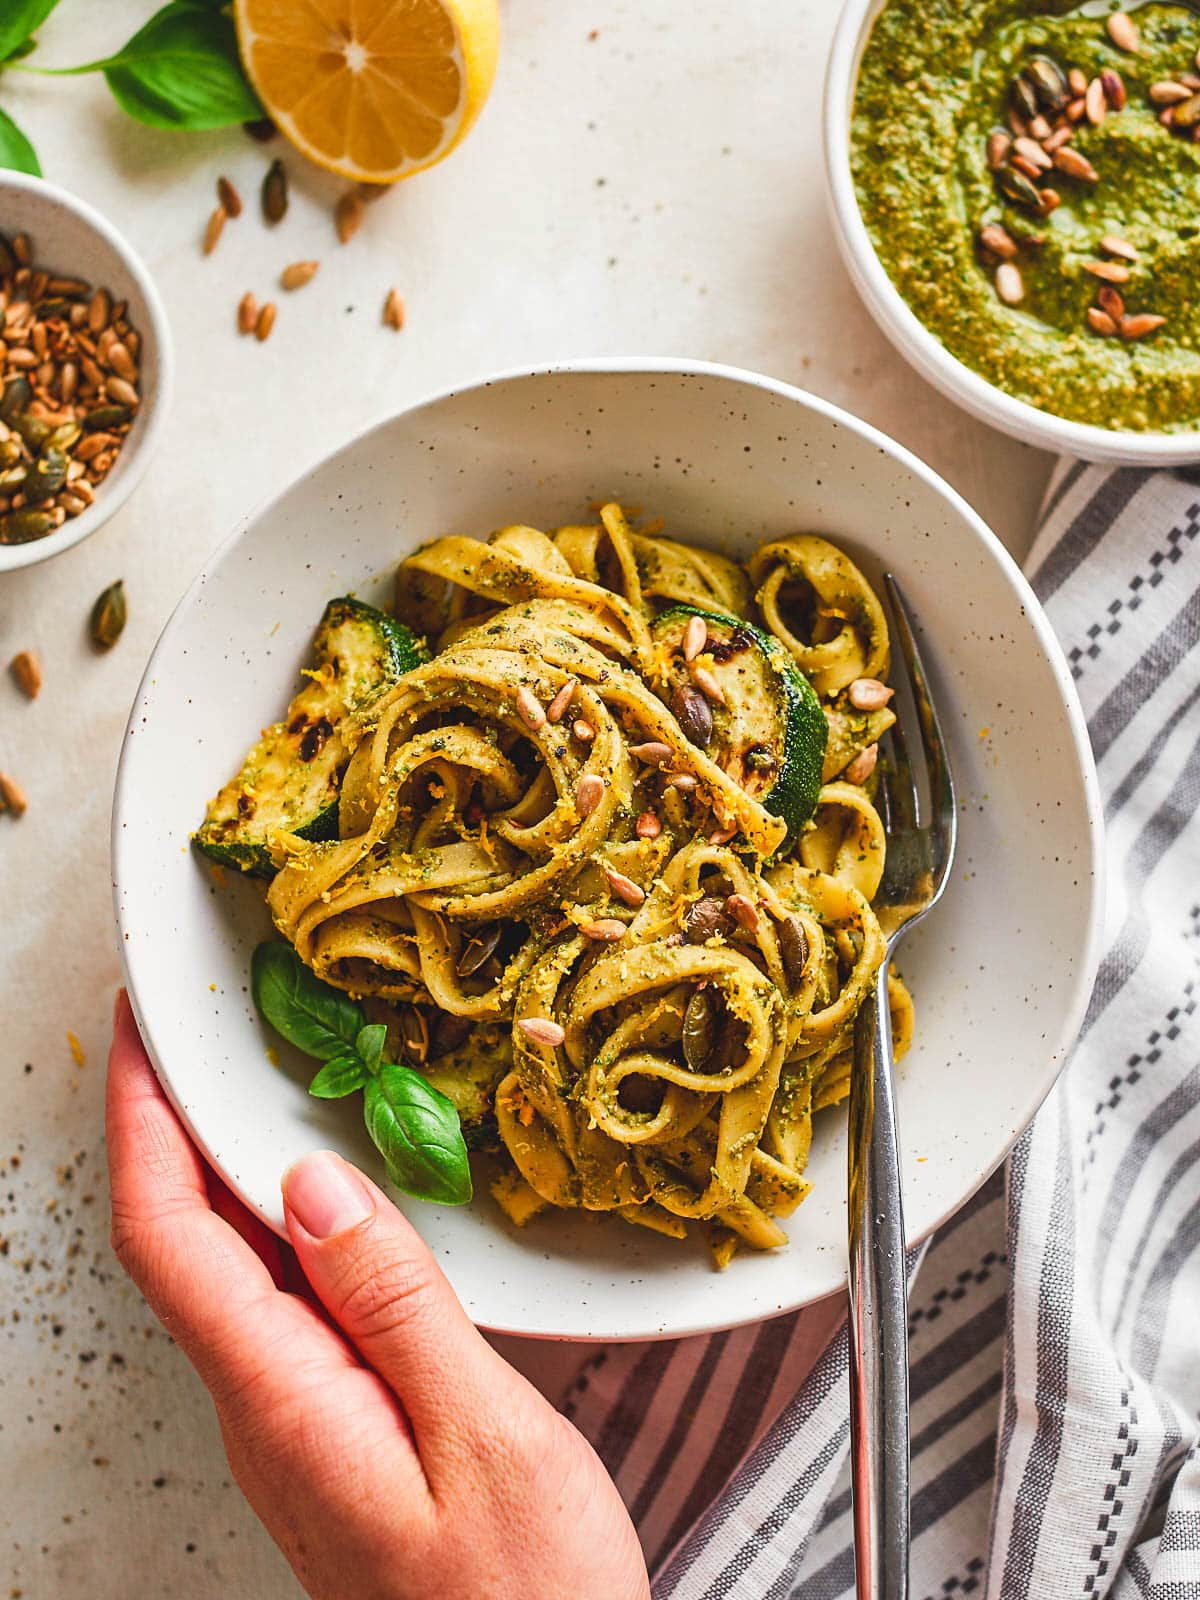 A hand taking a bowl of courgette pesto pasta